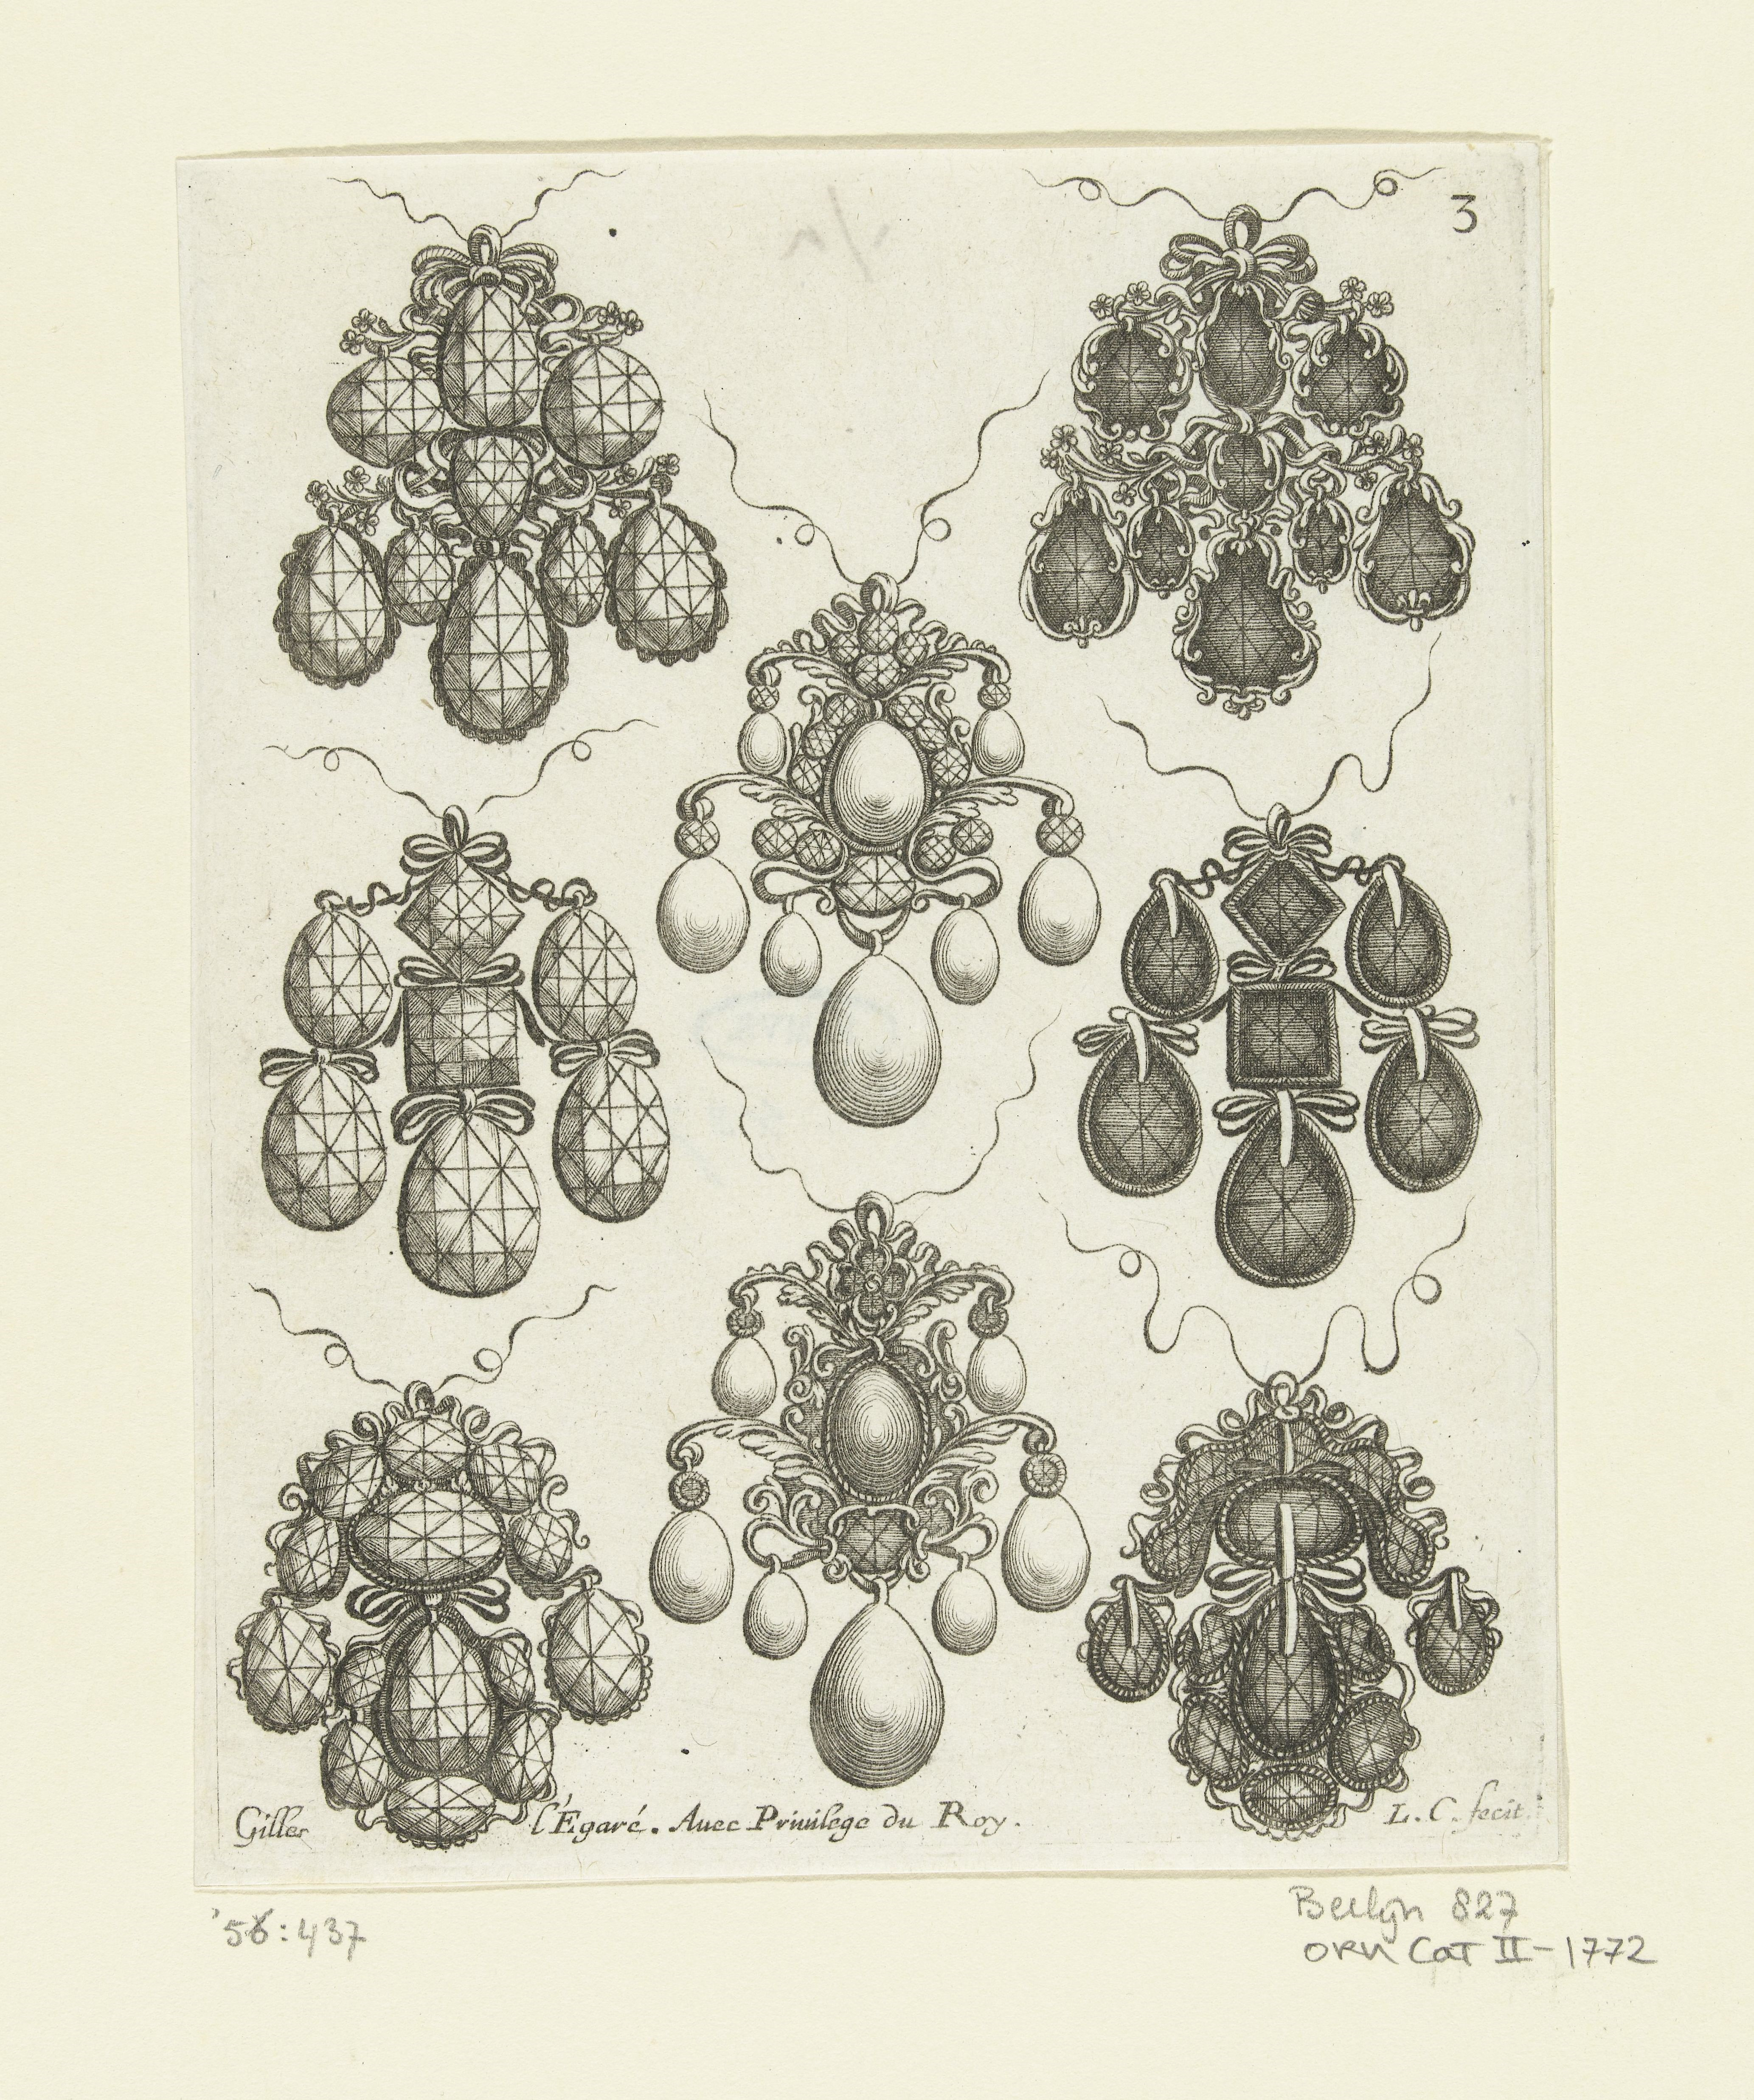 A jeweller's sketch in brown ink on white paper showing designs for eight ornate pendant earrings.